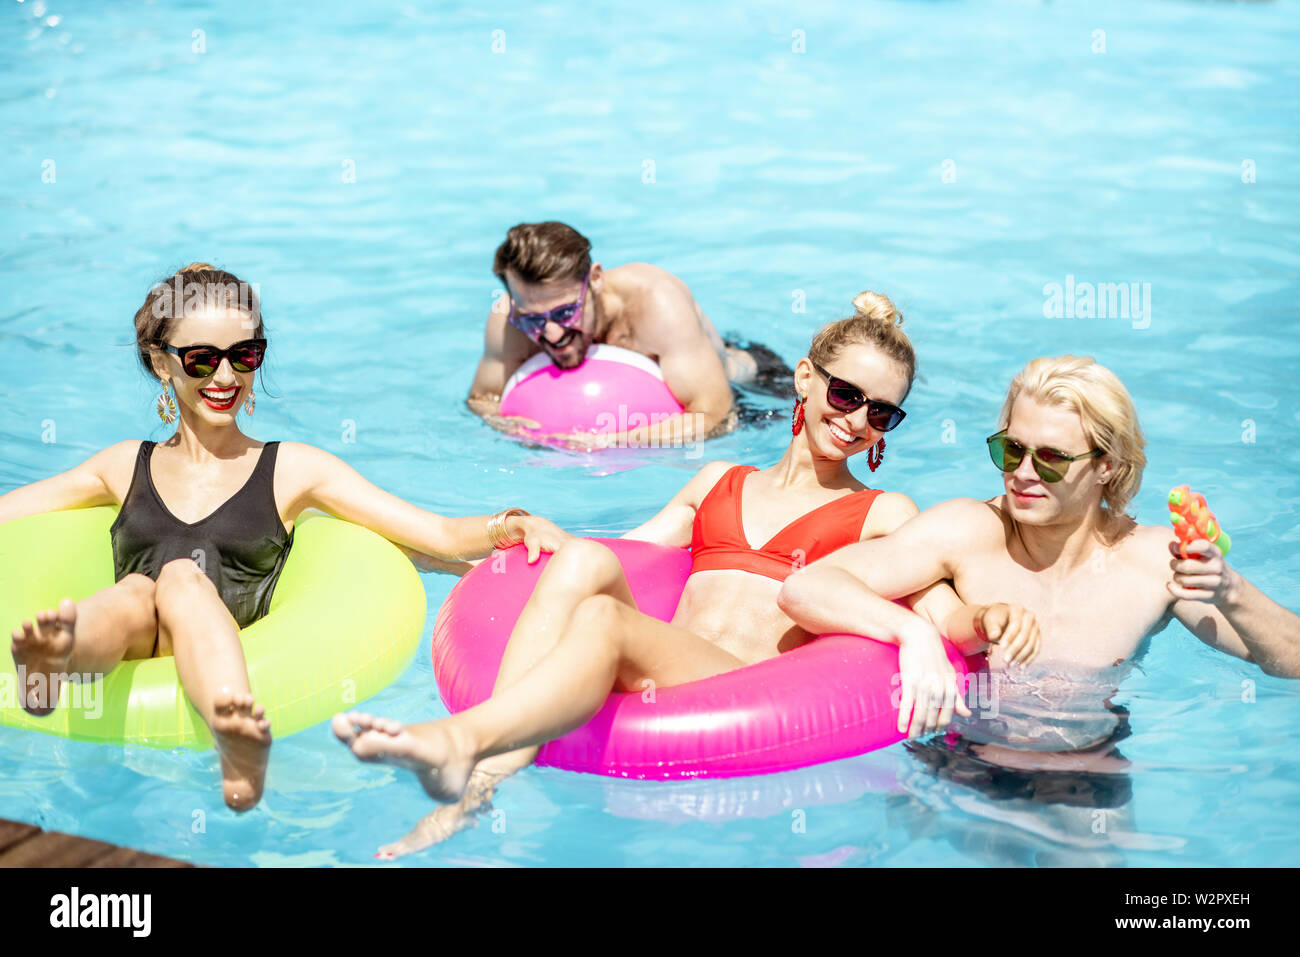 Group of a happy friends having fun, swimming with inflatable toys in the swimming pool outdoors during the summertime Stock Photo